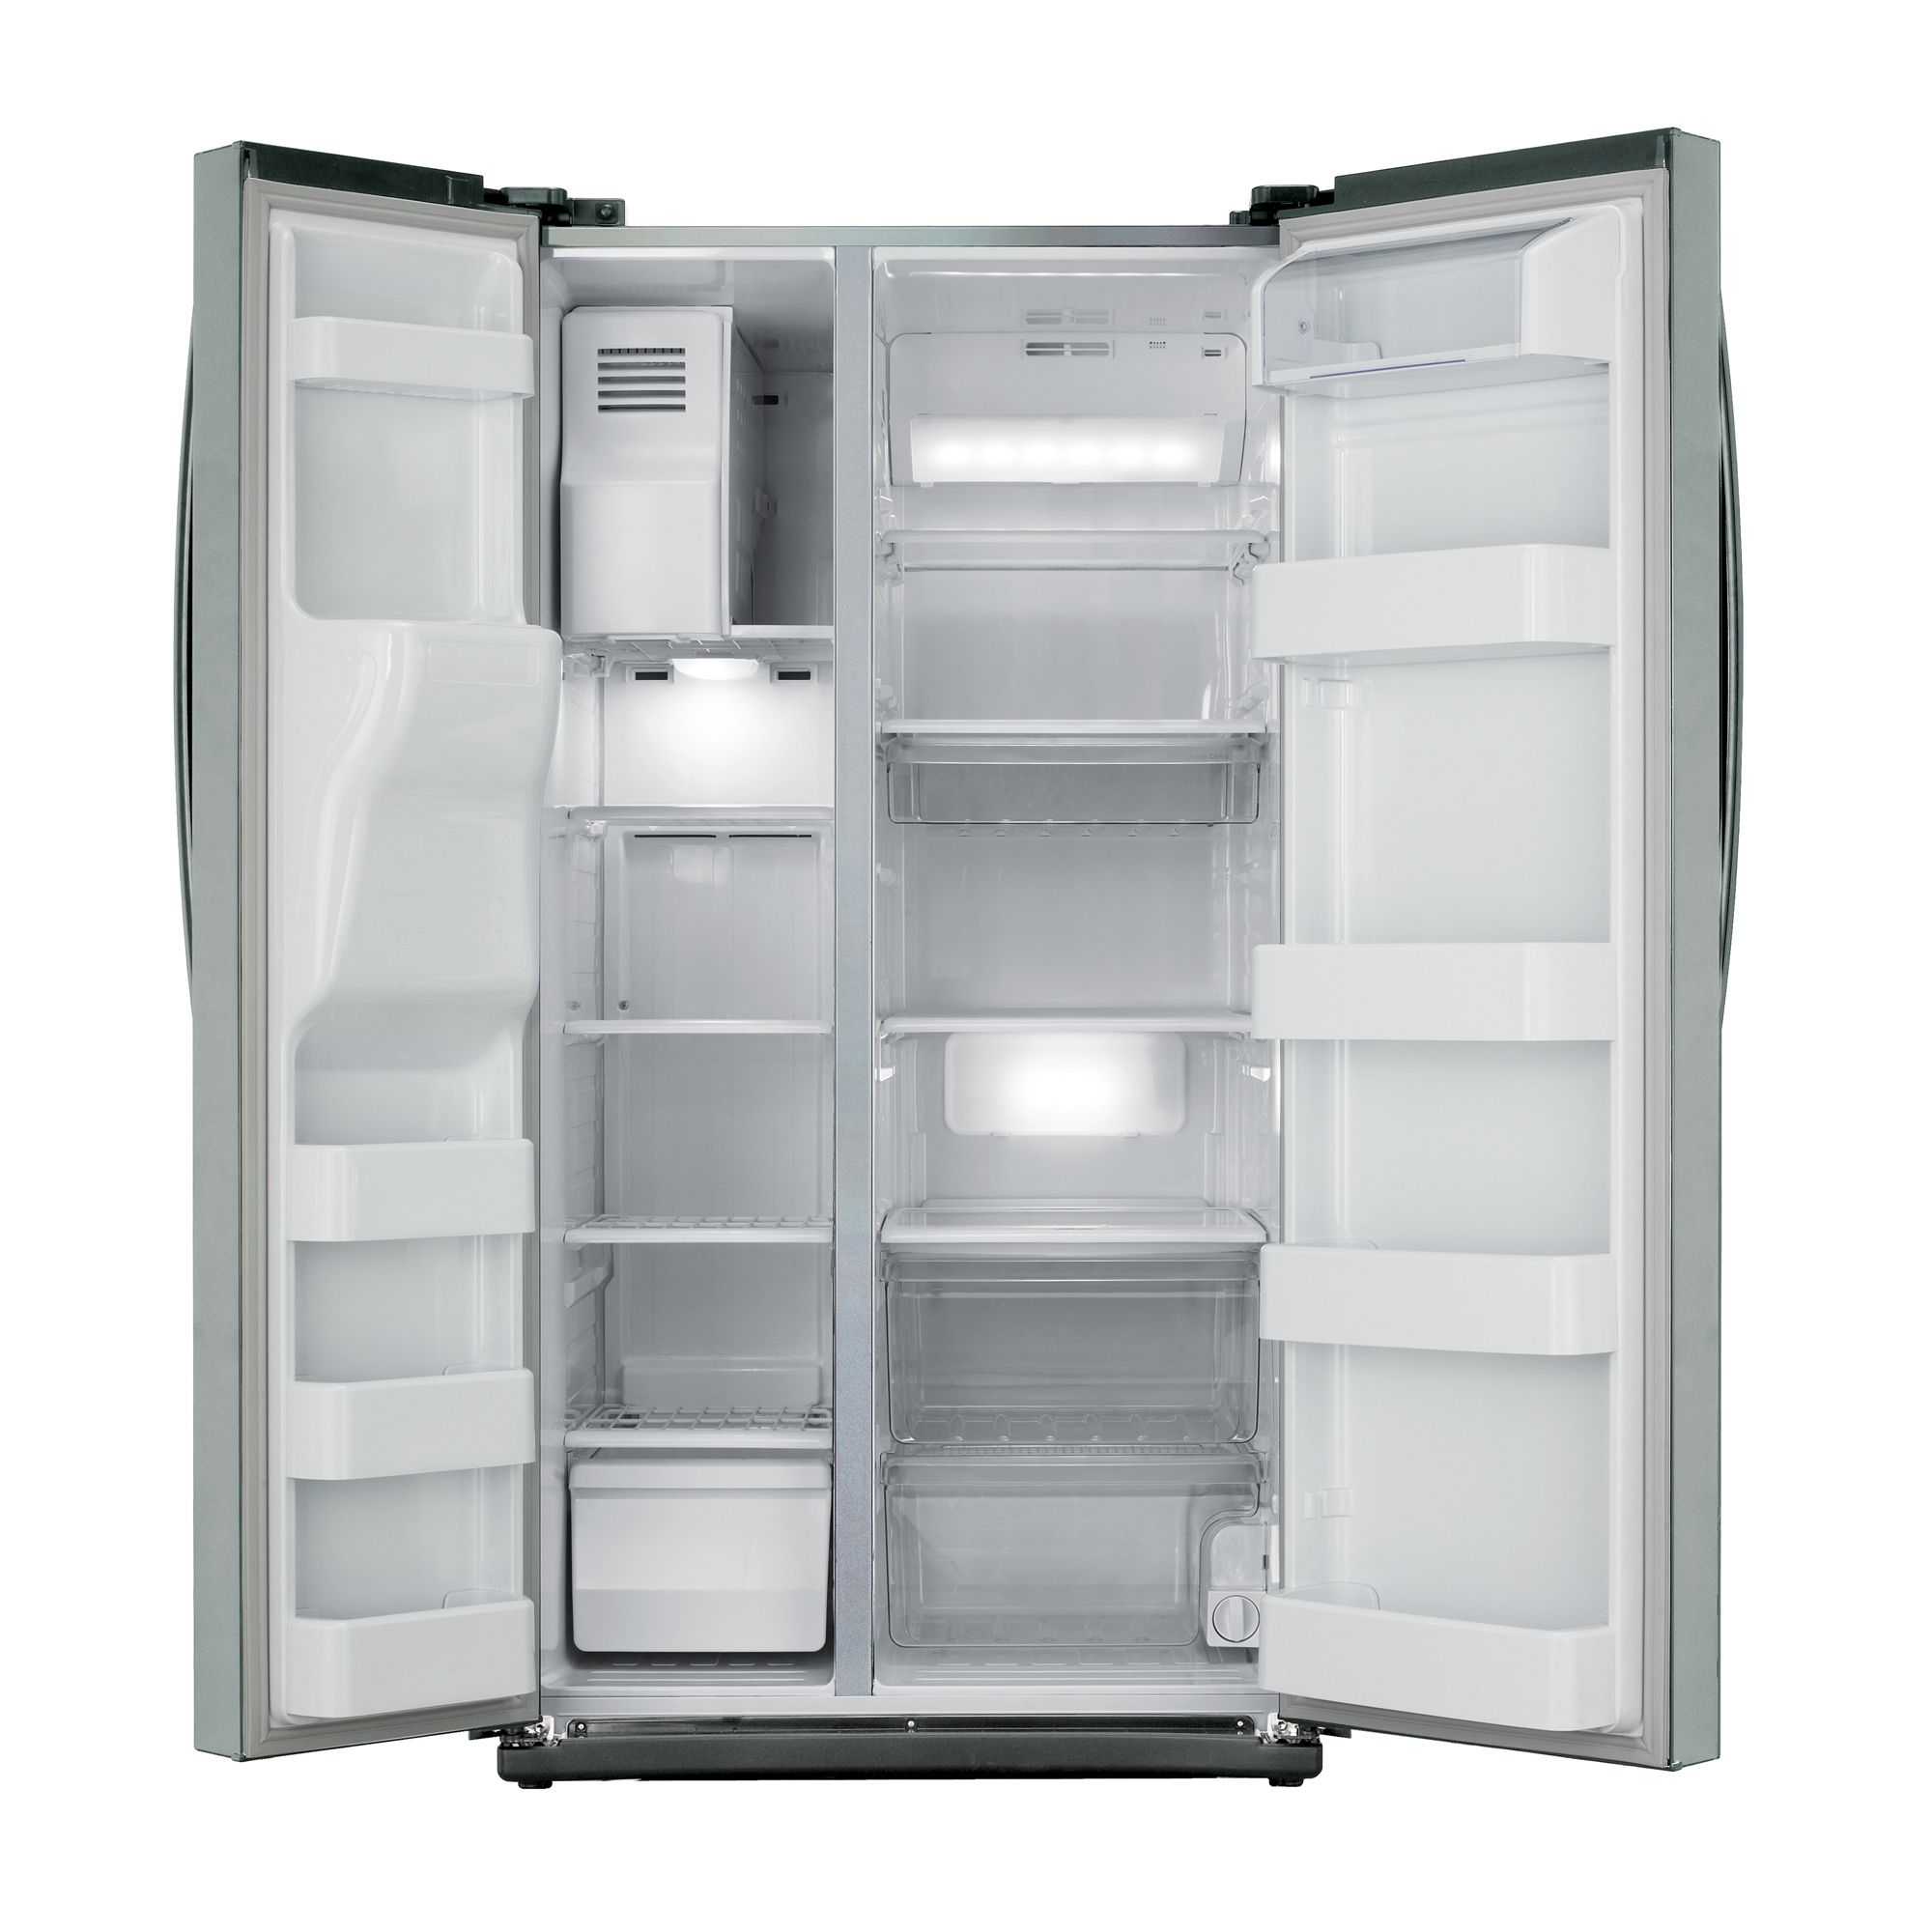 Samsung RS261MDAS Side by Side Refrigerator